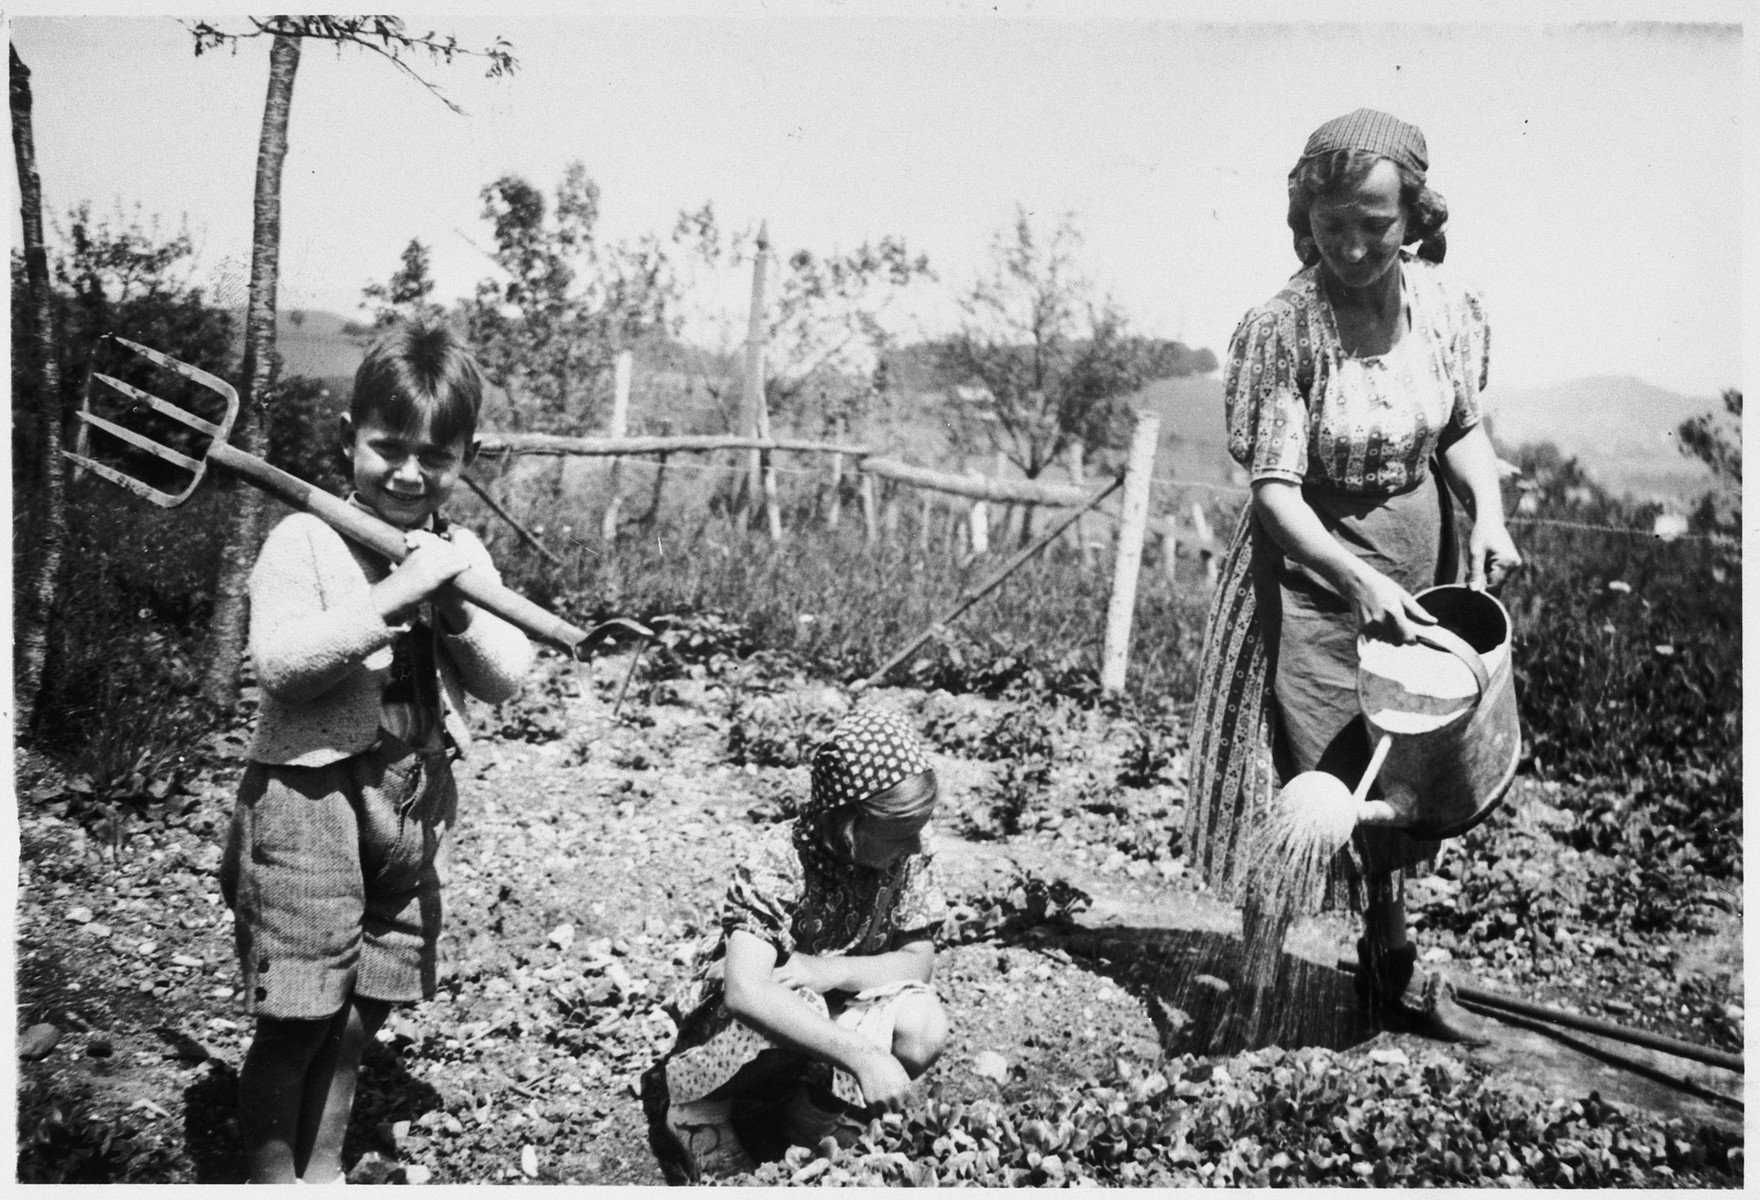 Jetti works in her garden assisted by her children Gerhard and Inge.